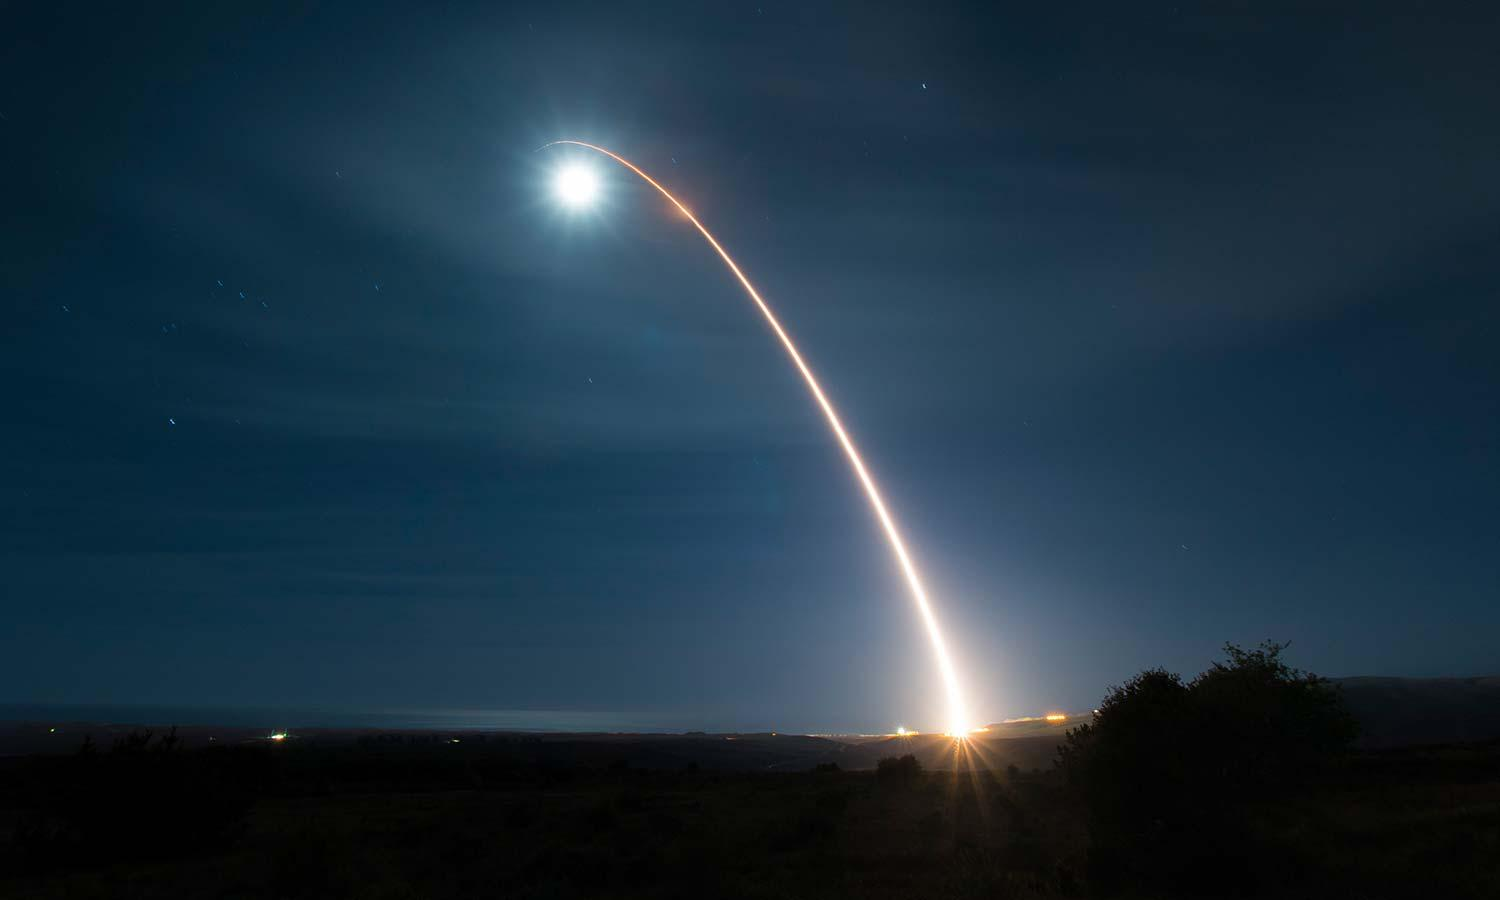 unarmed Minuteman III intercontinental ballistic missile test launch from Vandenberg Air Force Base, Calif. (